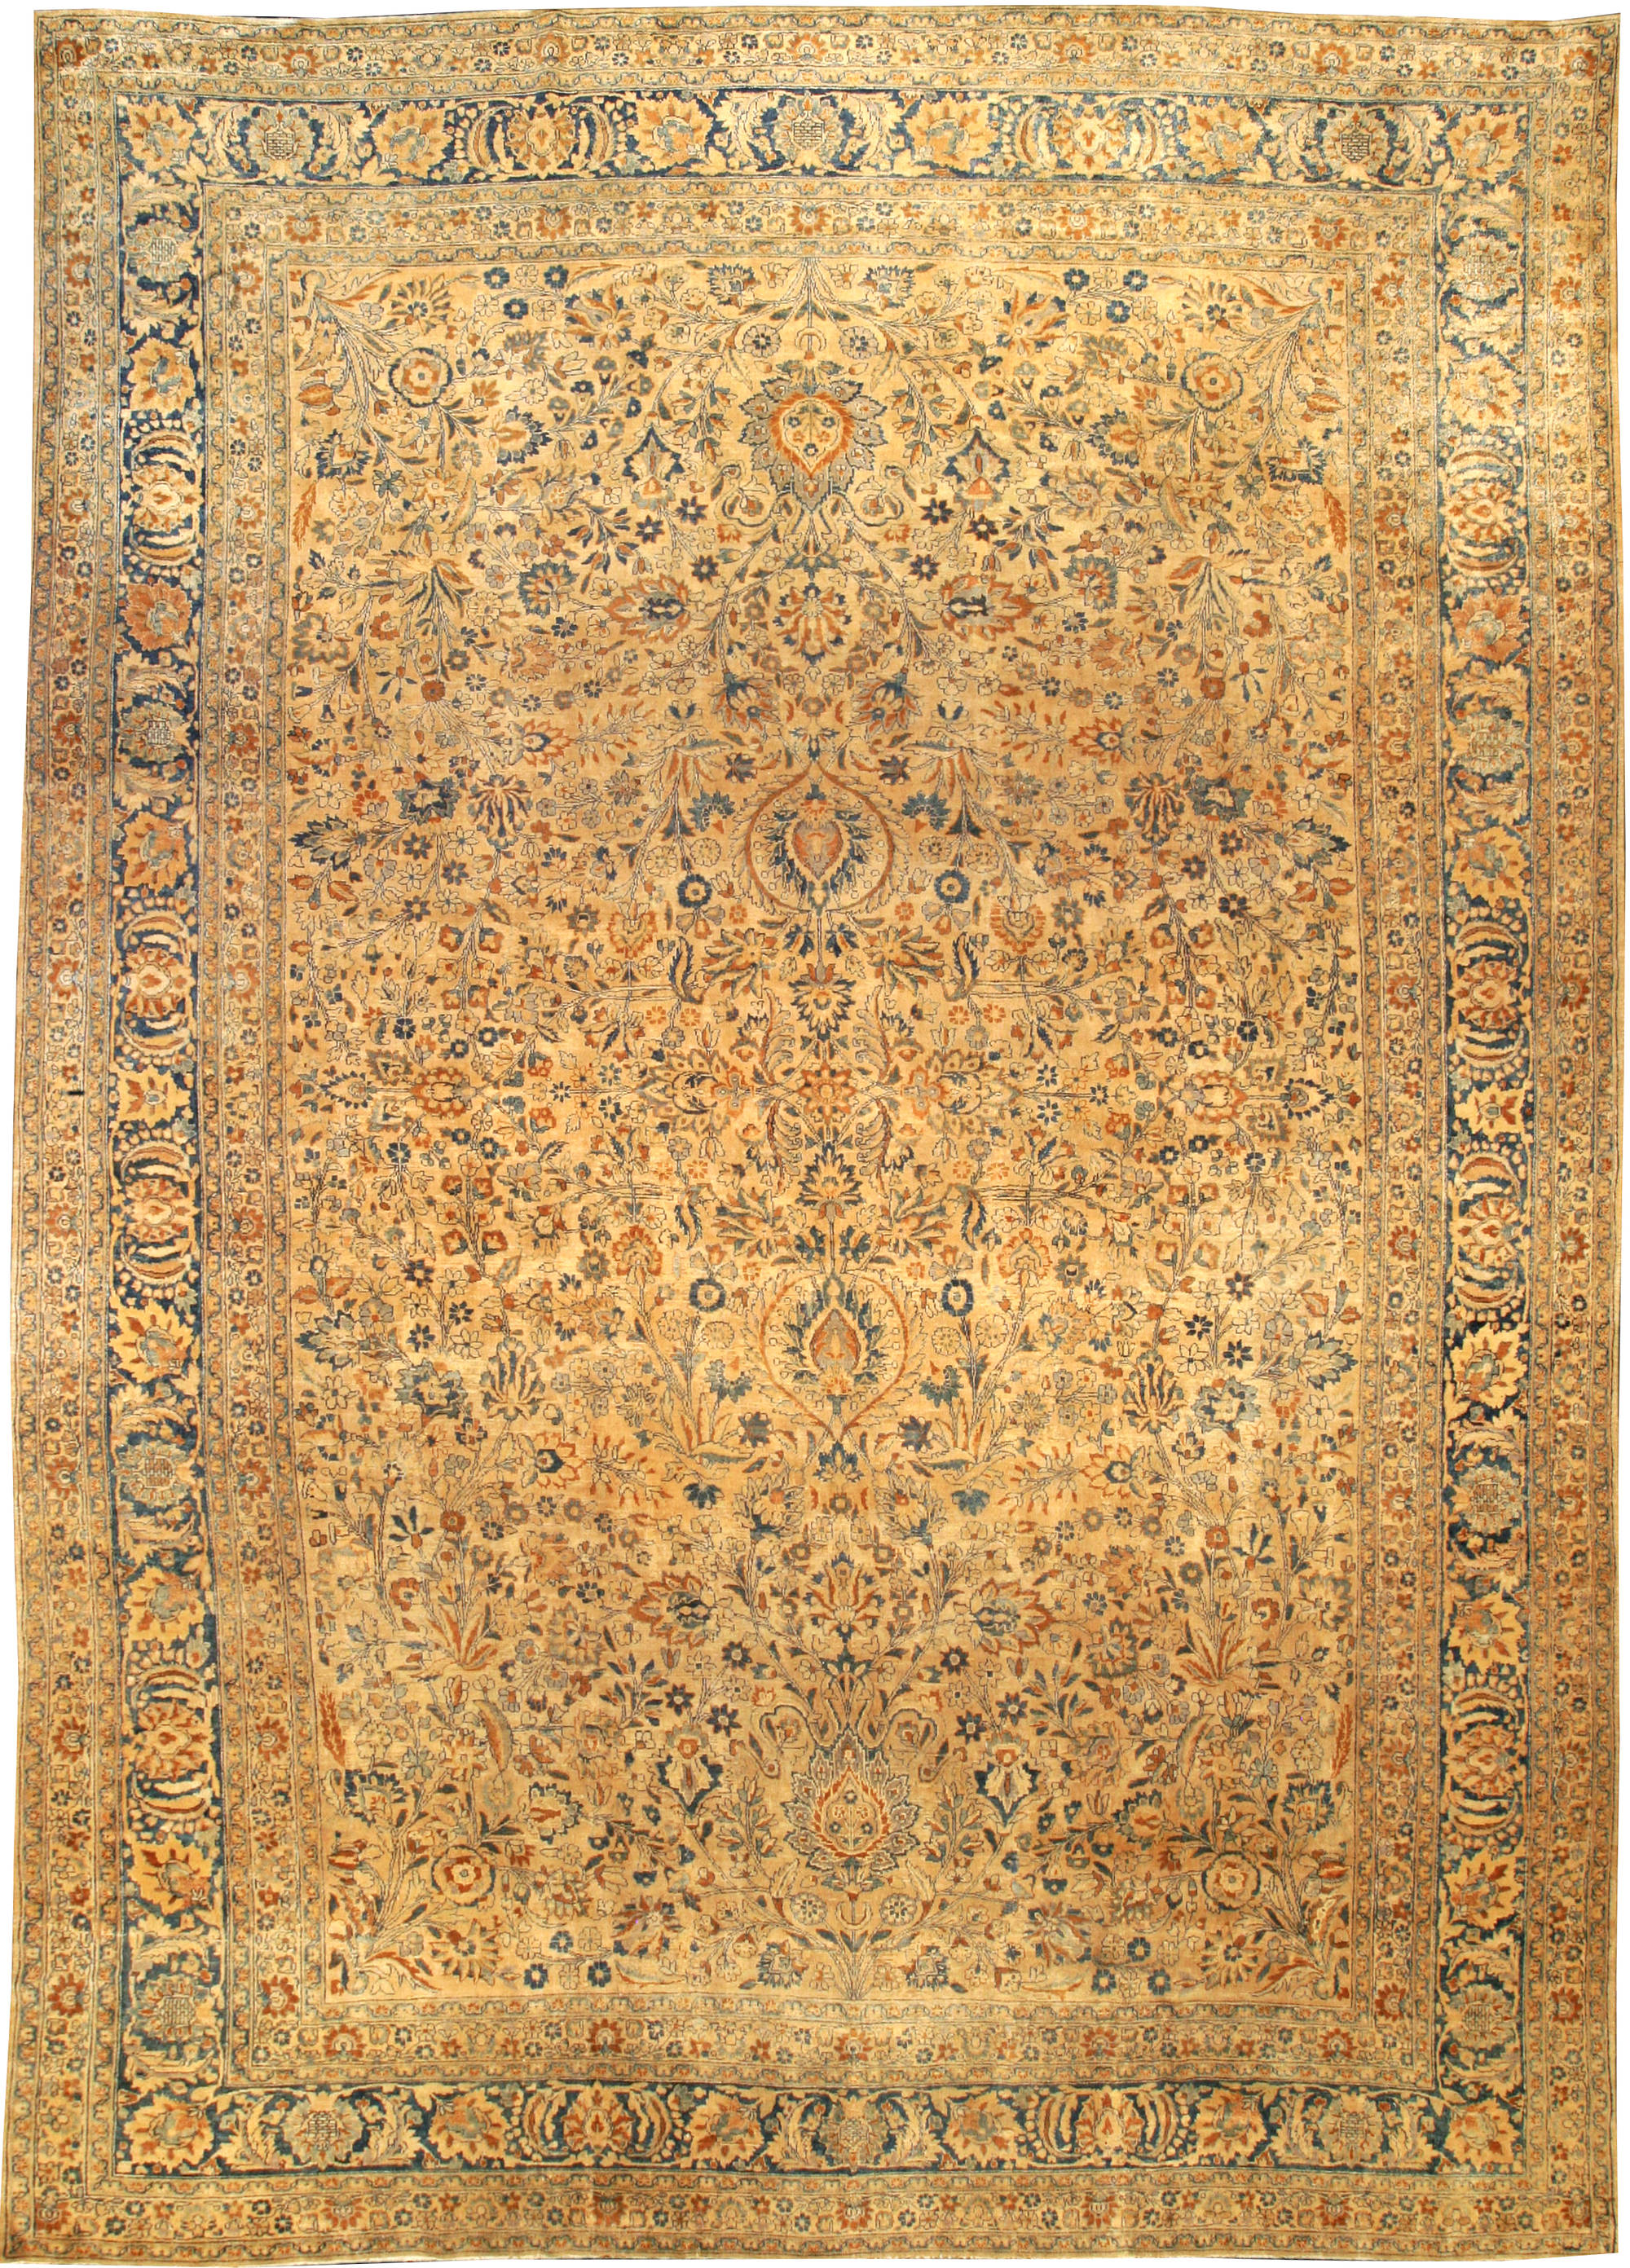 Kirman Kerman Rugs Amp Carpets For Sale Karastan Persian